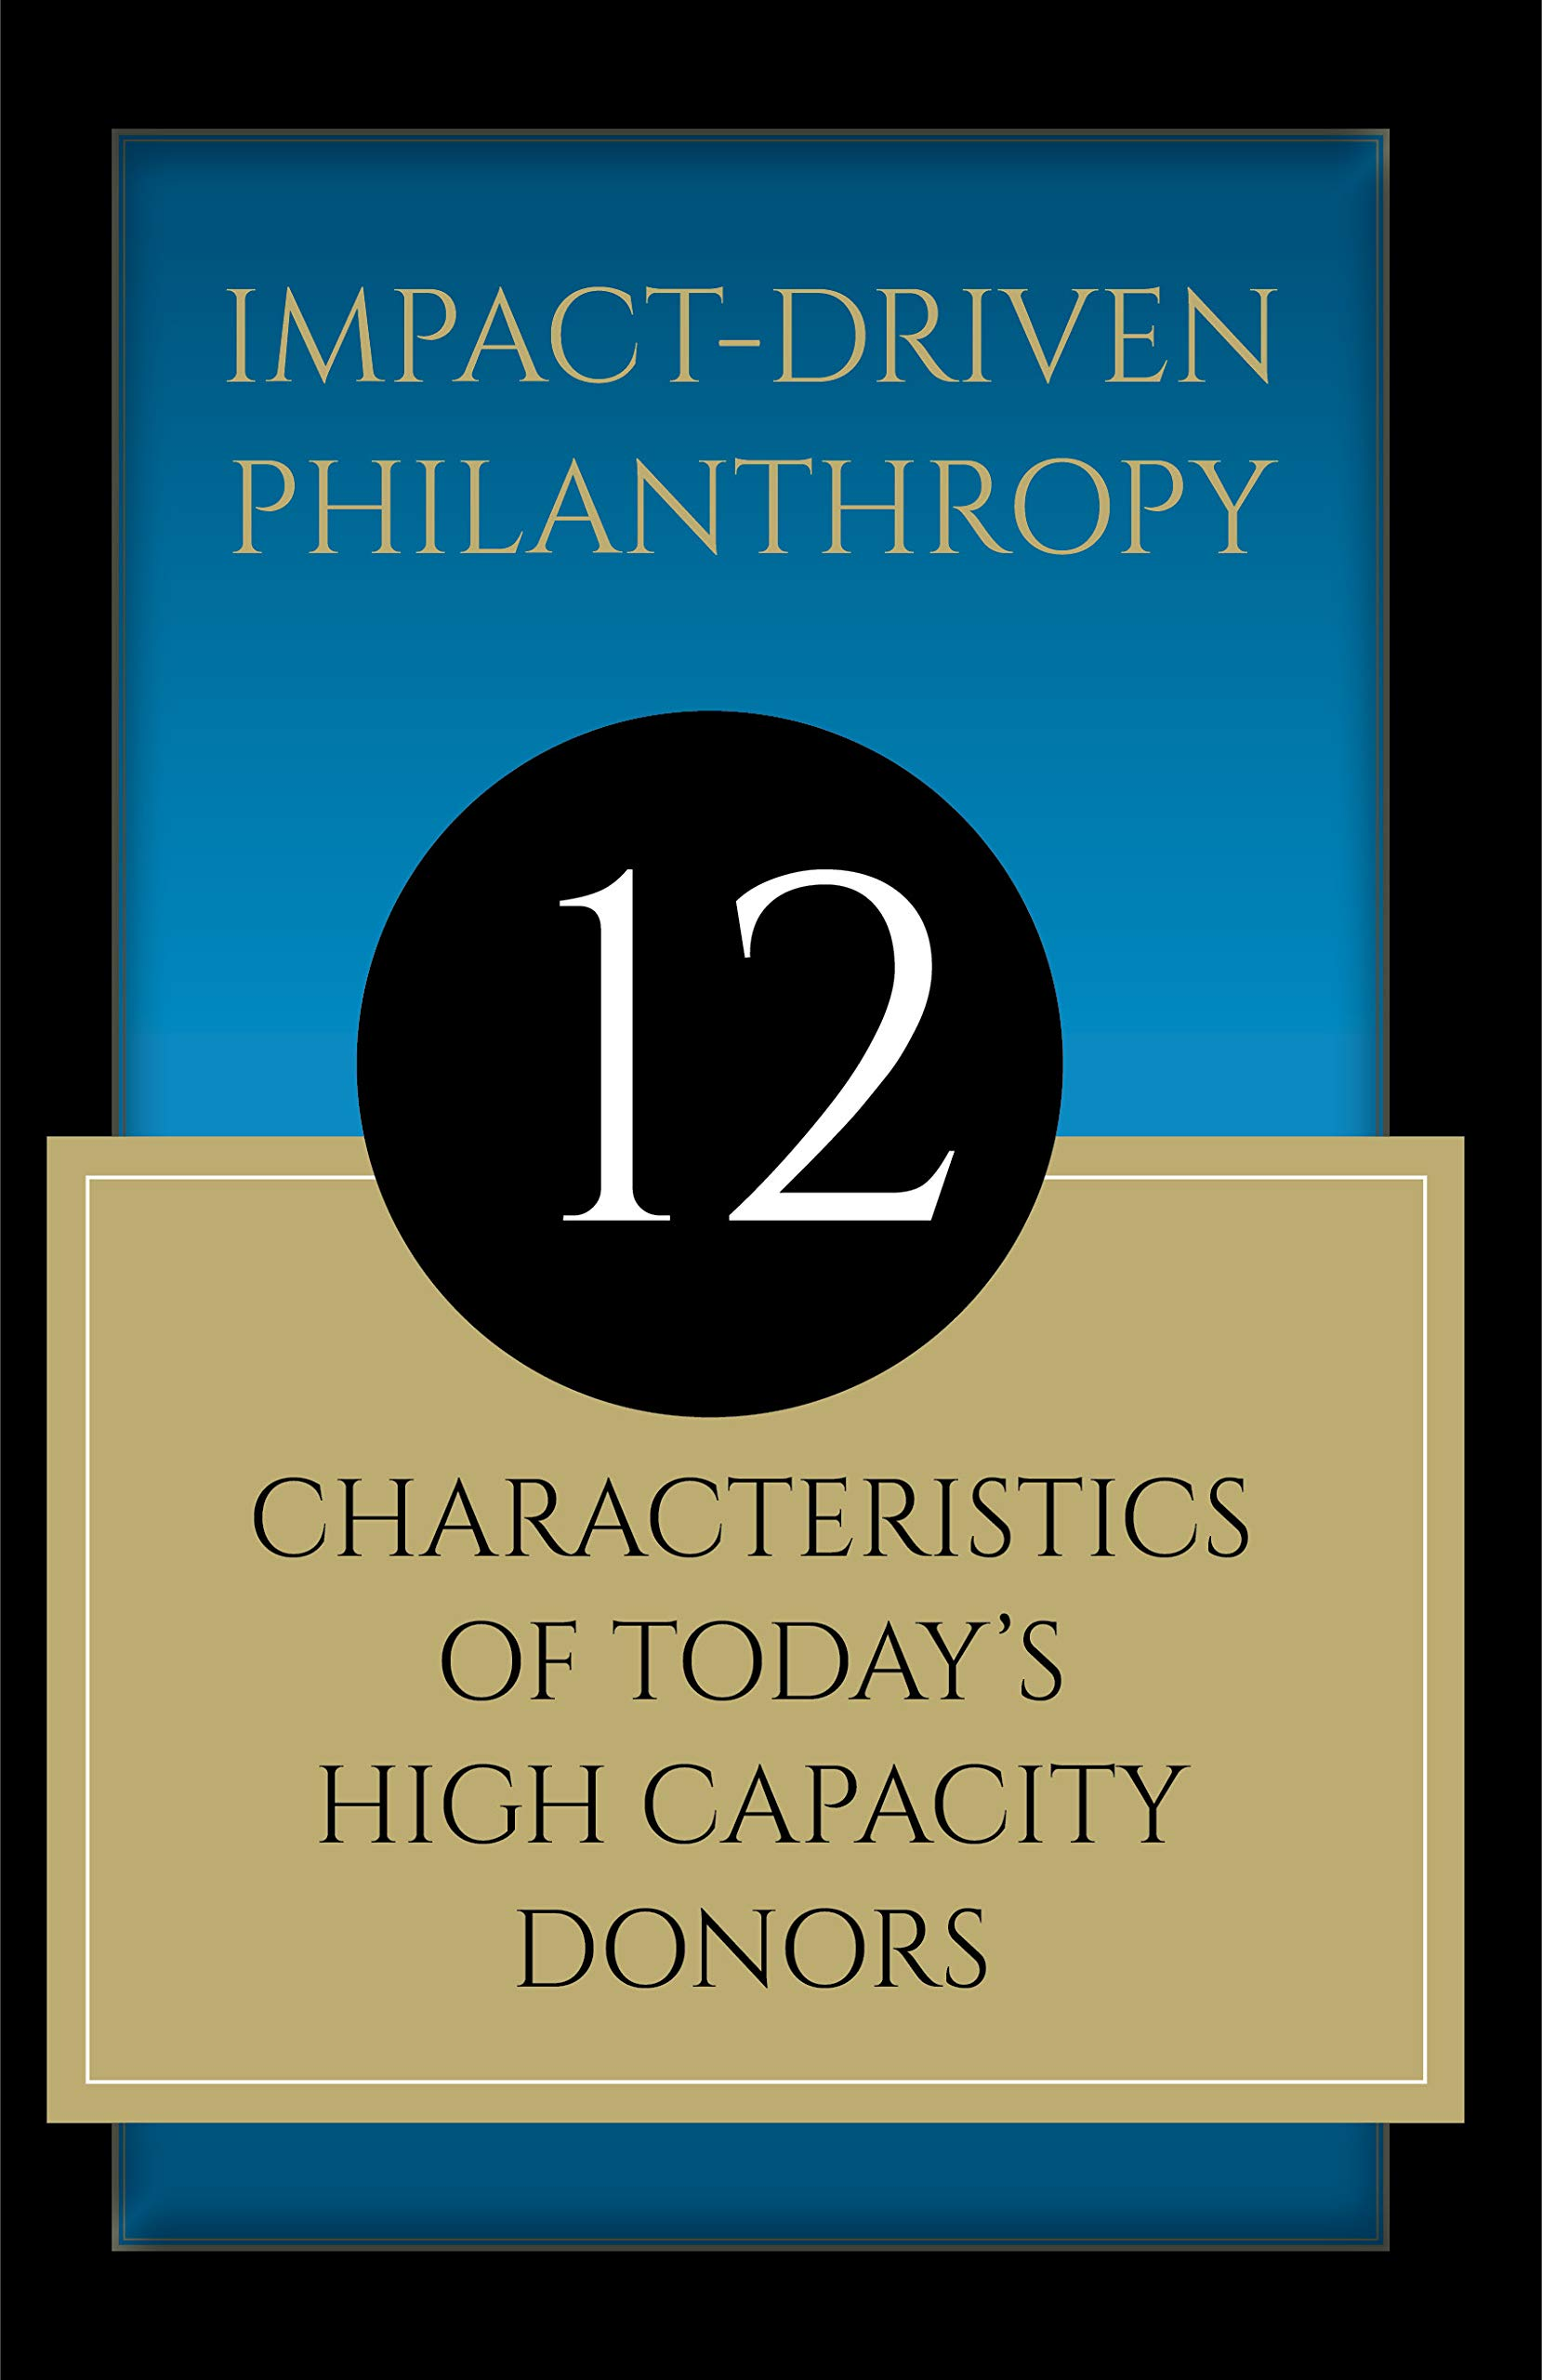 Impact-Driven Philanthropy: 12 Characteristics of Today's High Capacity Donors